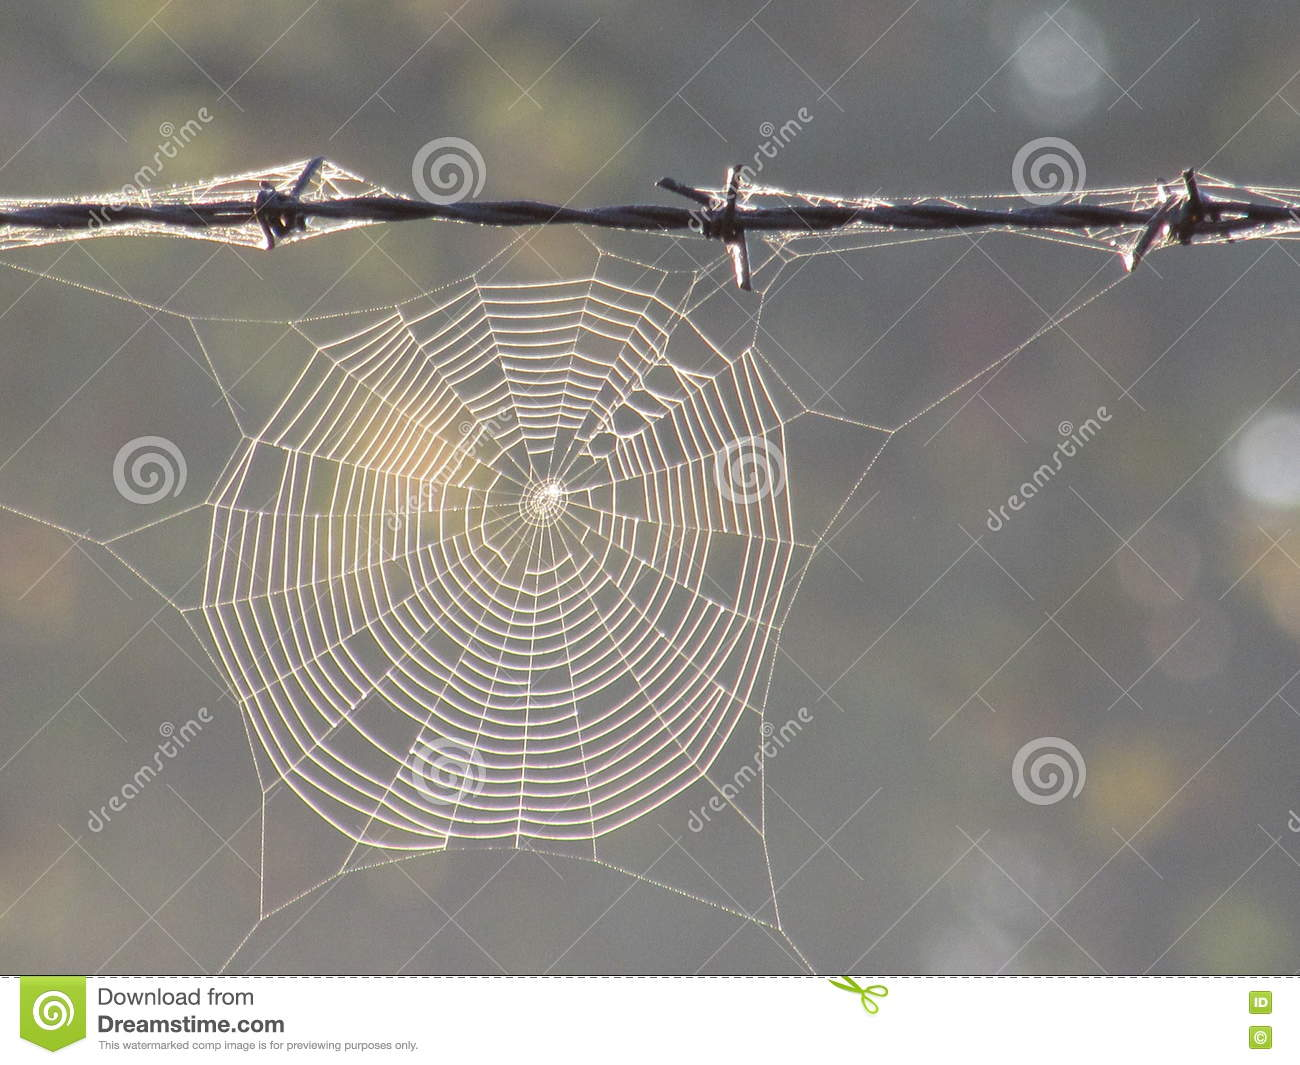 Spider Web In Fog Hanging On Barbed Wire Stock Image - Image of ...